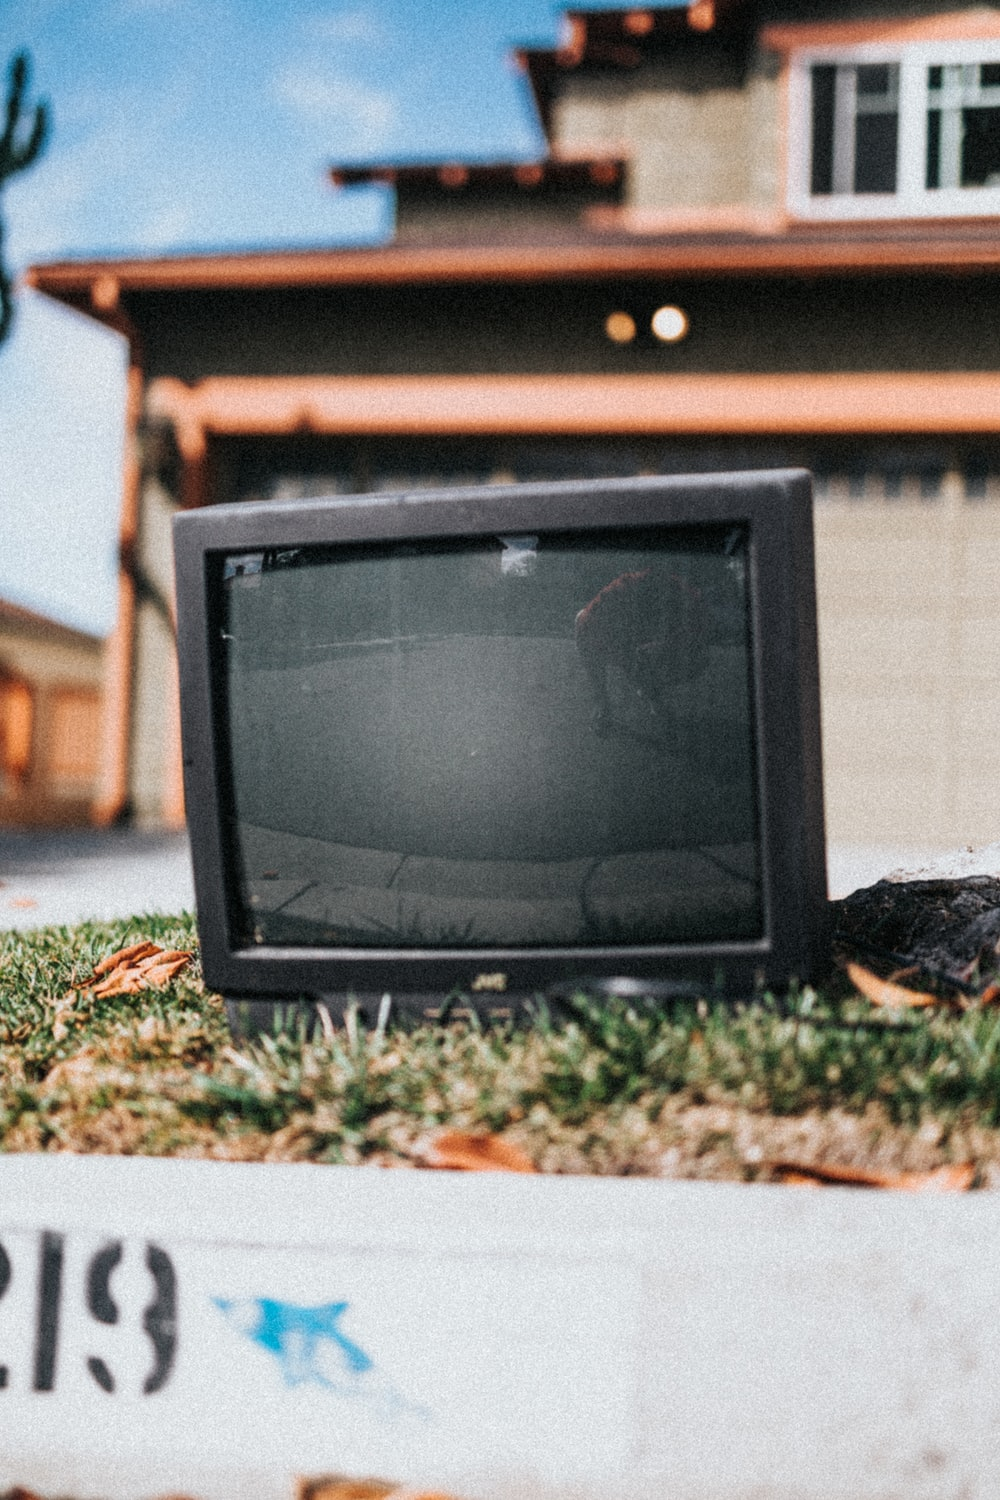 black crt tv on green grass during daytime